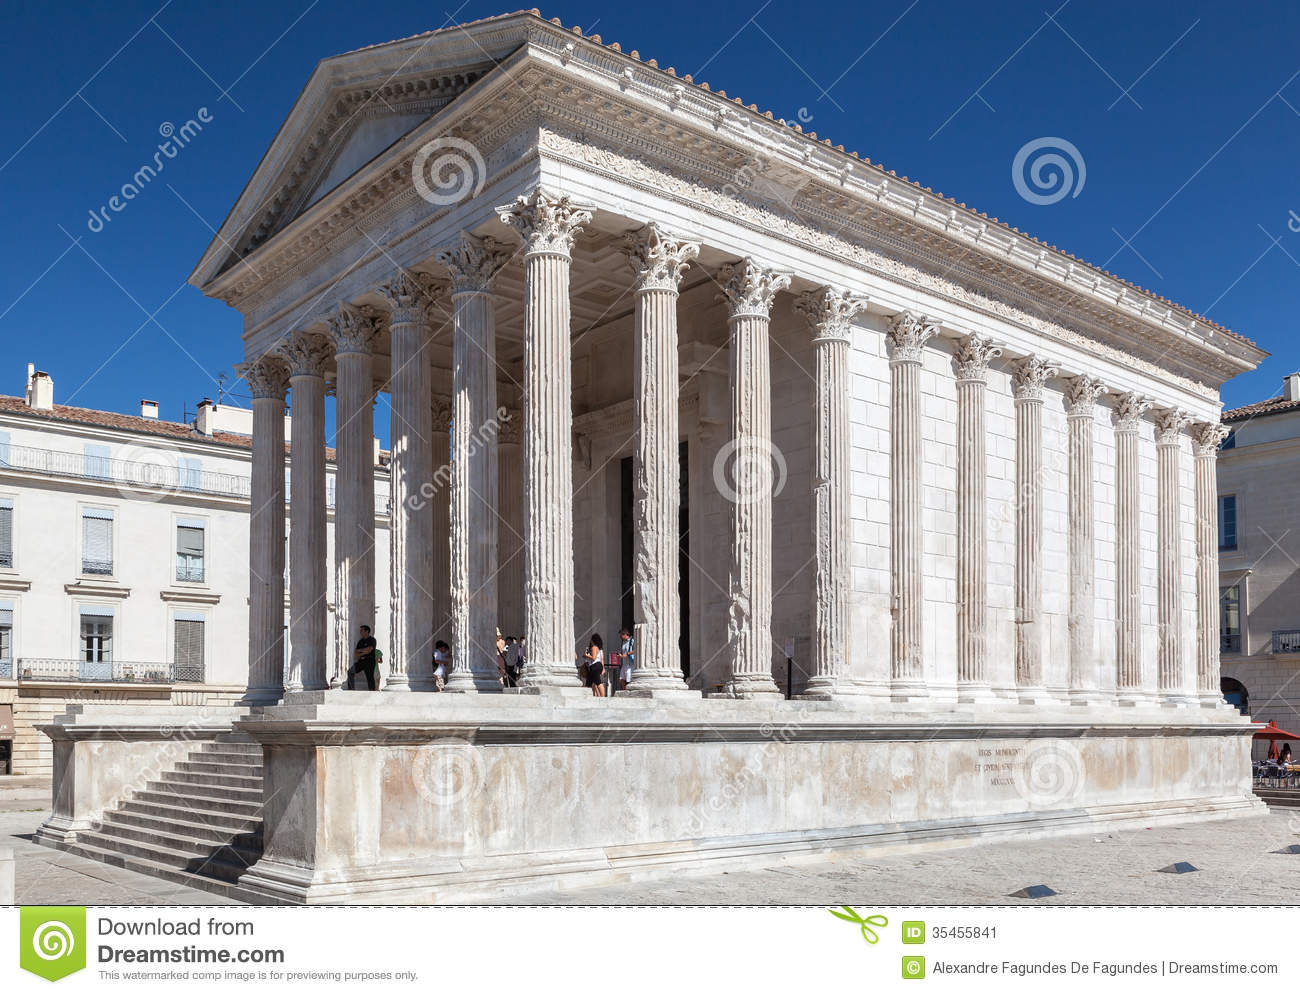 Maison carree nimes france editorial photo image of - Maison carree nimes ...